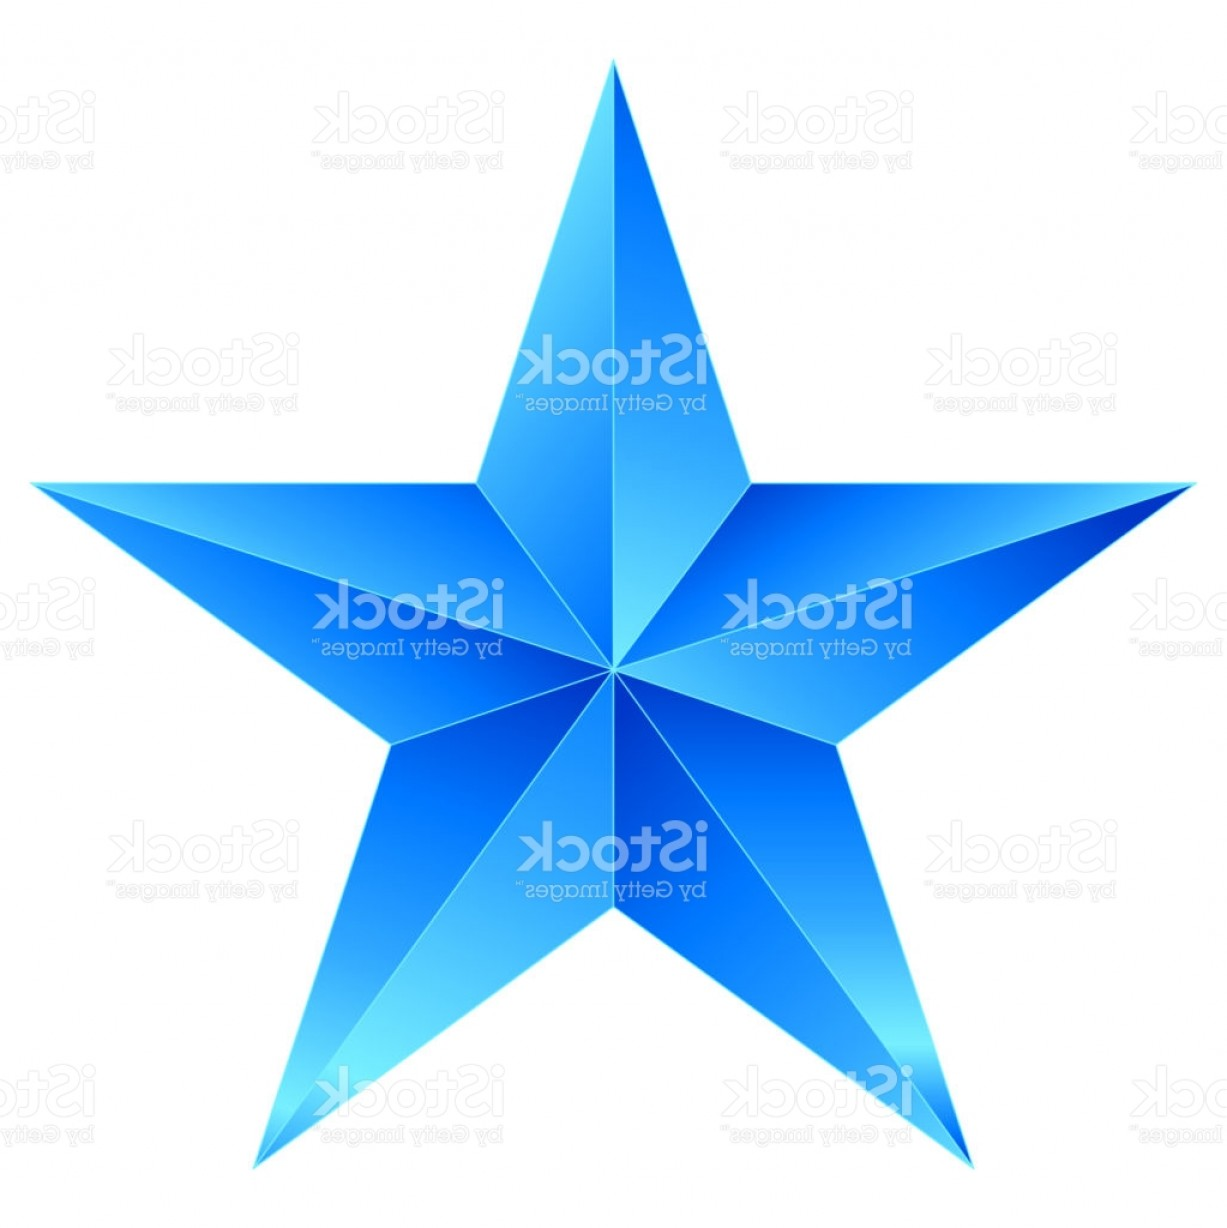 5 Point Star Vector Art: Christmas Star Blue Point Star Isolated On White Gm